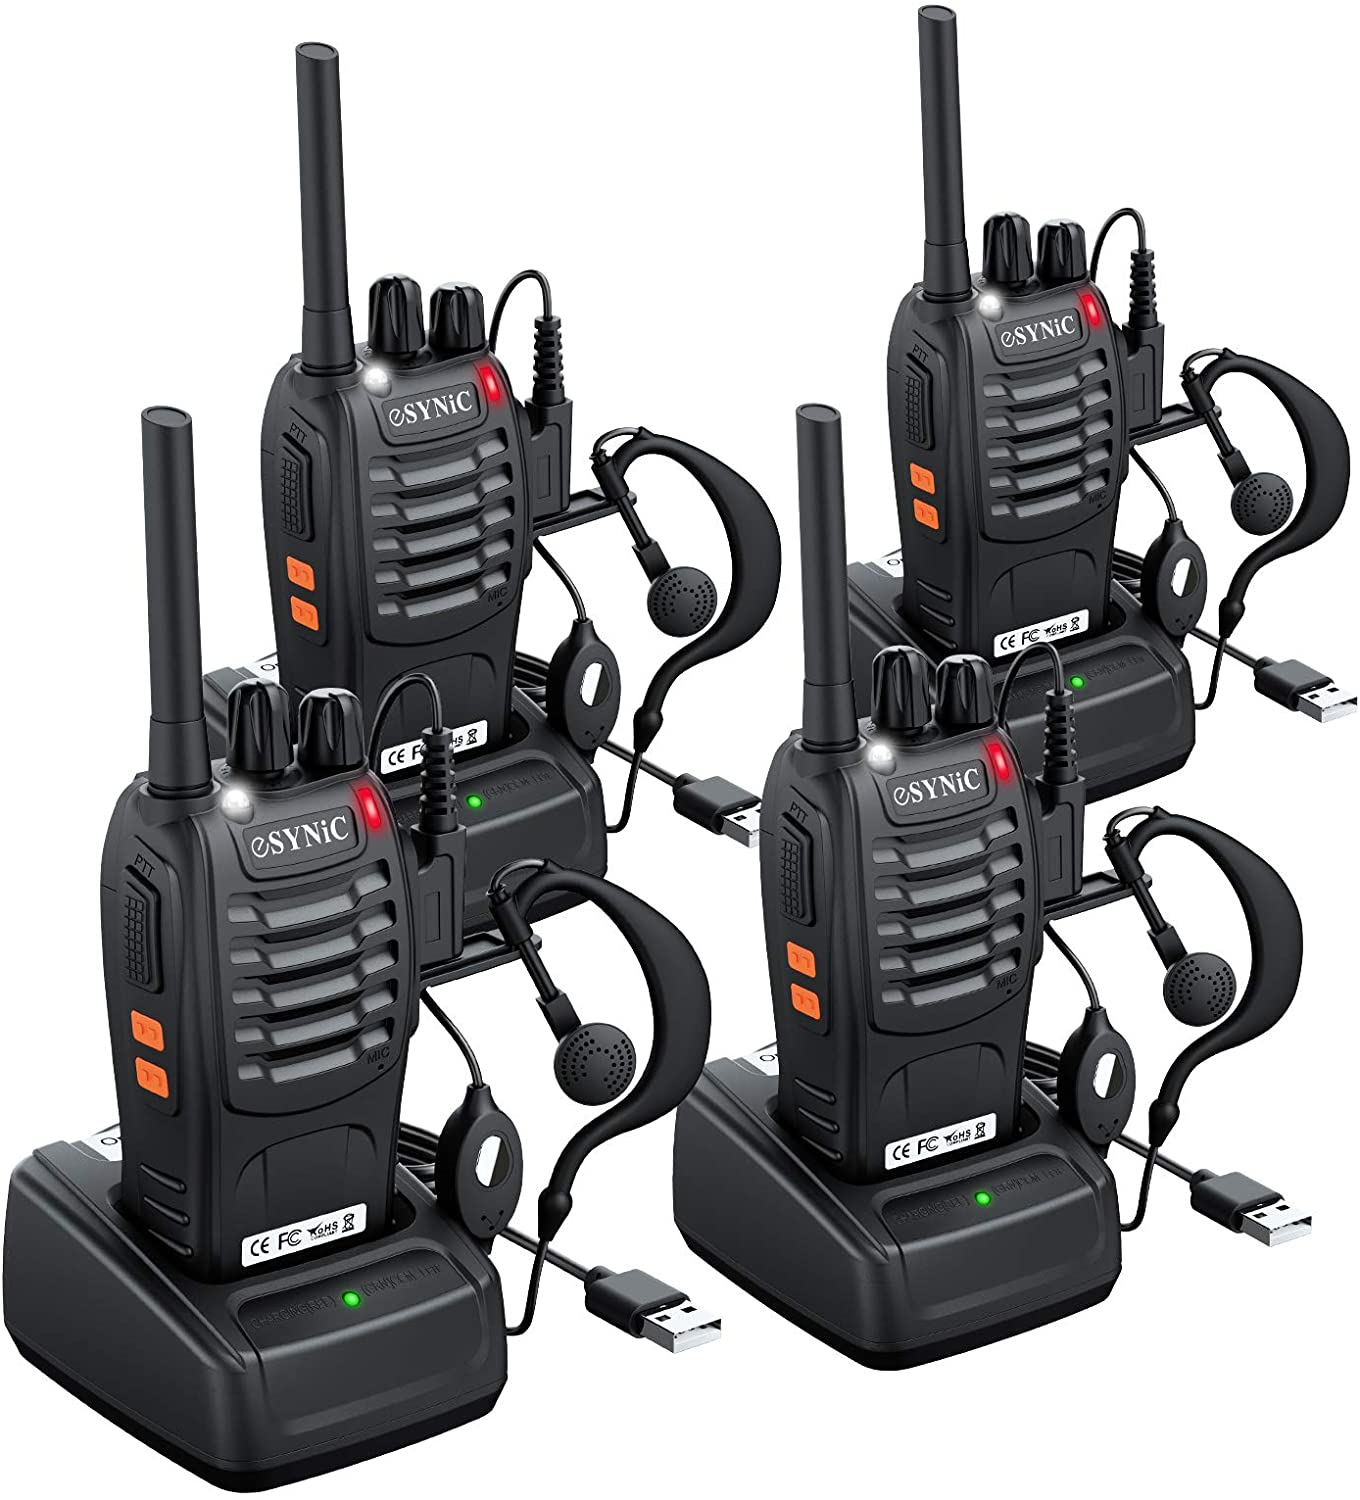 Long Distance 2 Way Radios Walkie Talkies 4 Pack Work FRS Walkie Talkies with Earpiece and Mic Set Headsets USB Charger Battery NOAA Weather Radio 4 Rechargeable Walkie Talkies for Adults Long Range